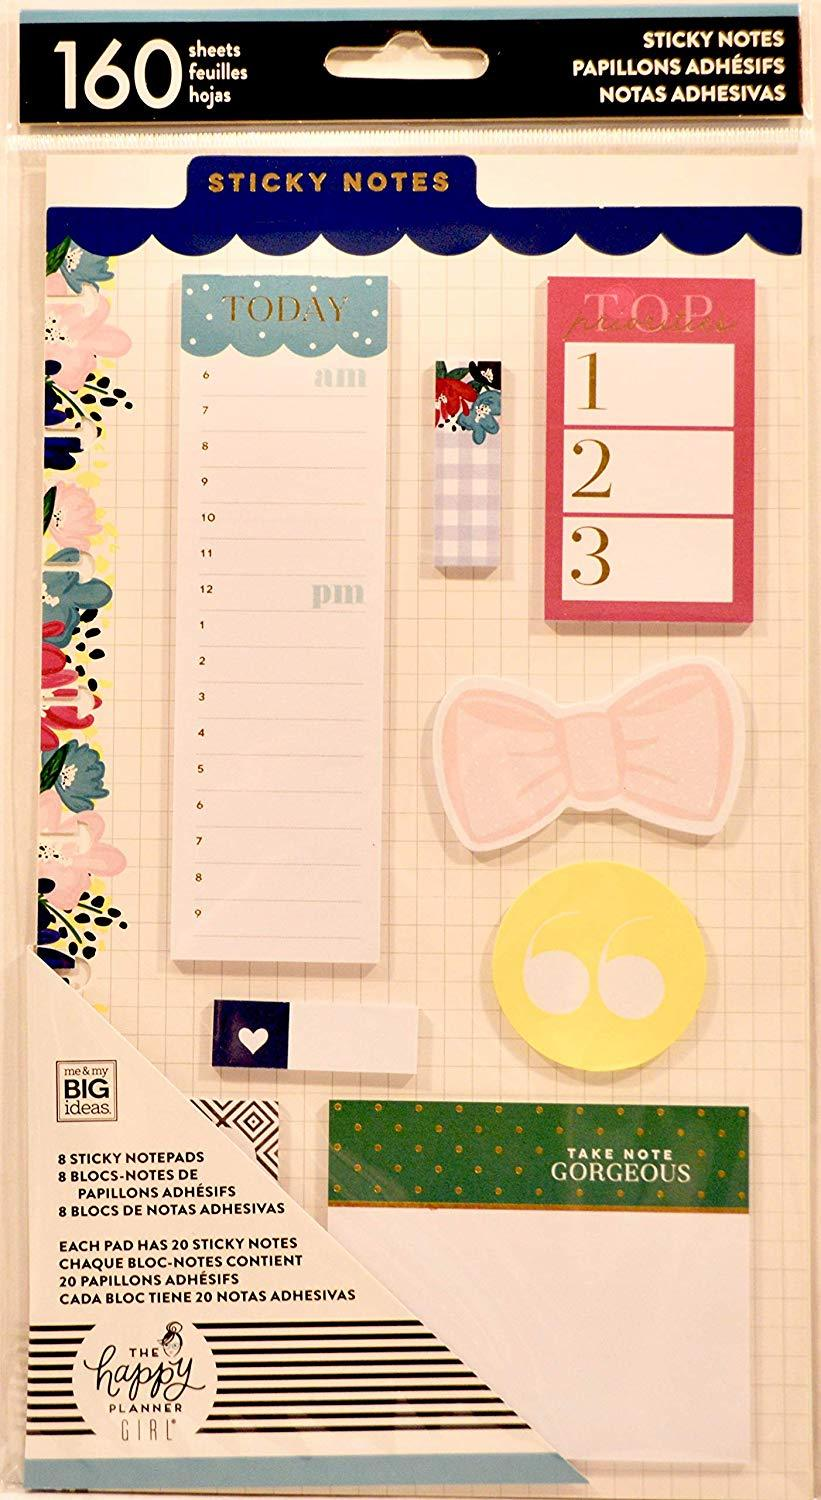 The Happy Planner Girl, Socialite, Sticky Notes